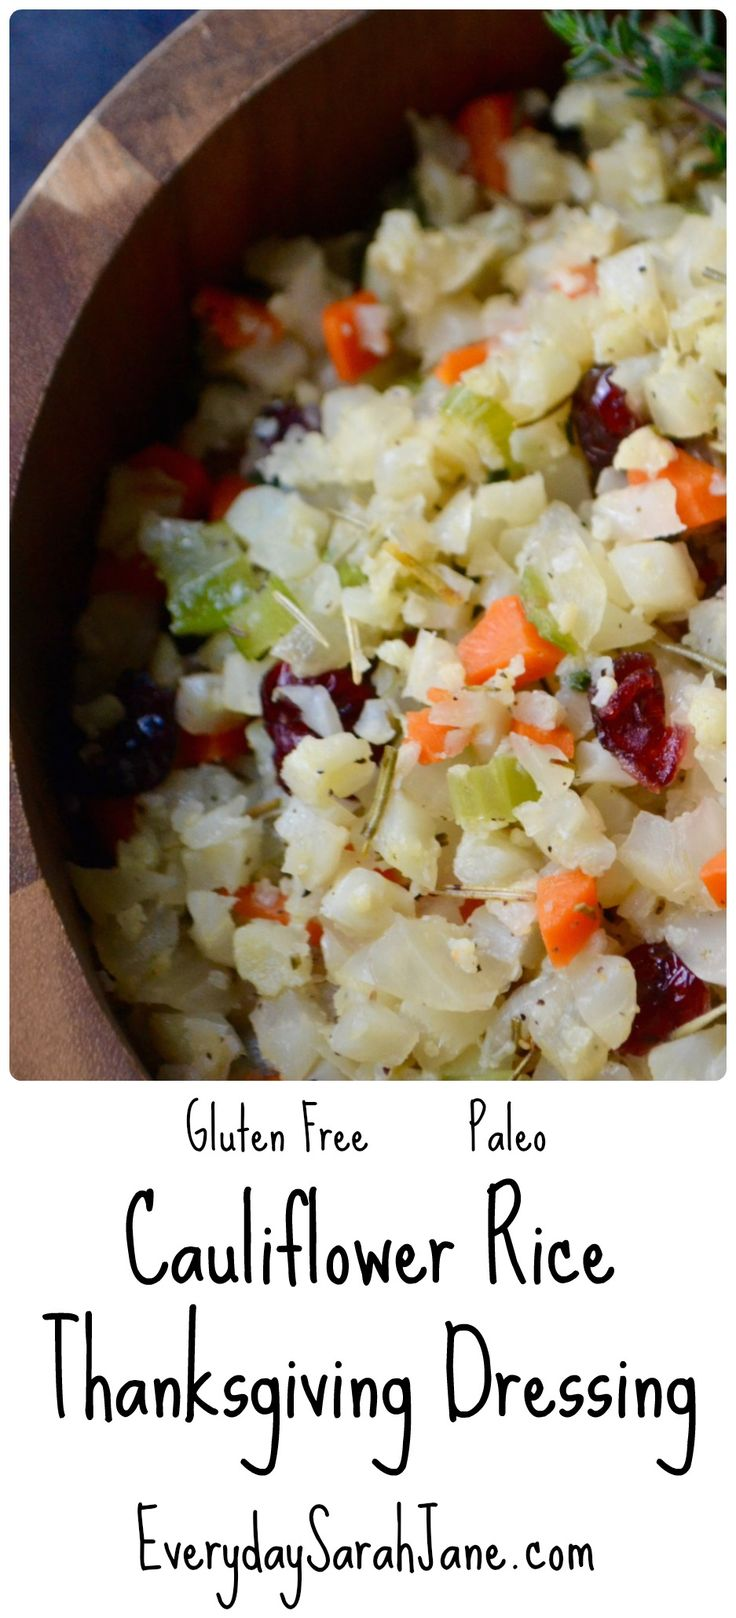 A perfect #glutenfree and healthier version of the classic Thanksgiving dressing. XO